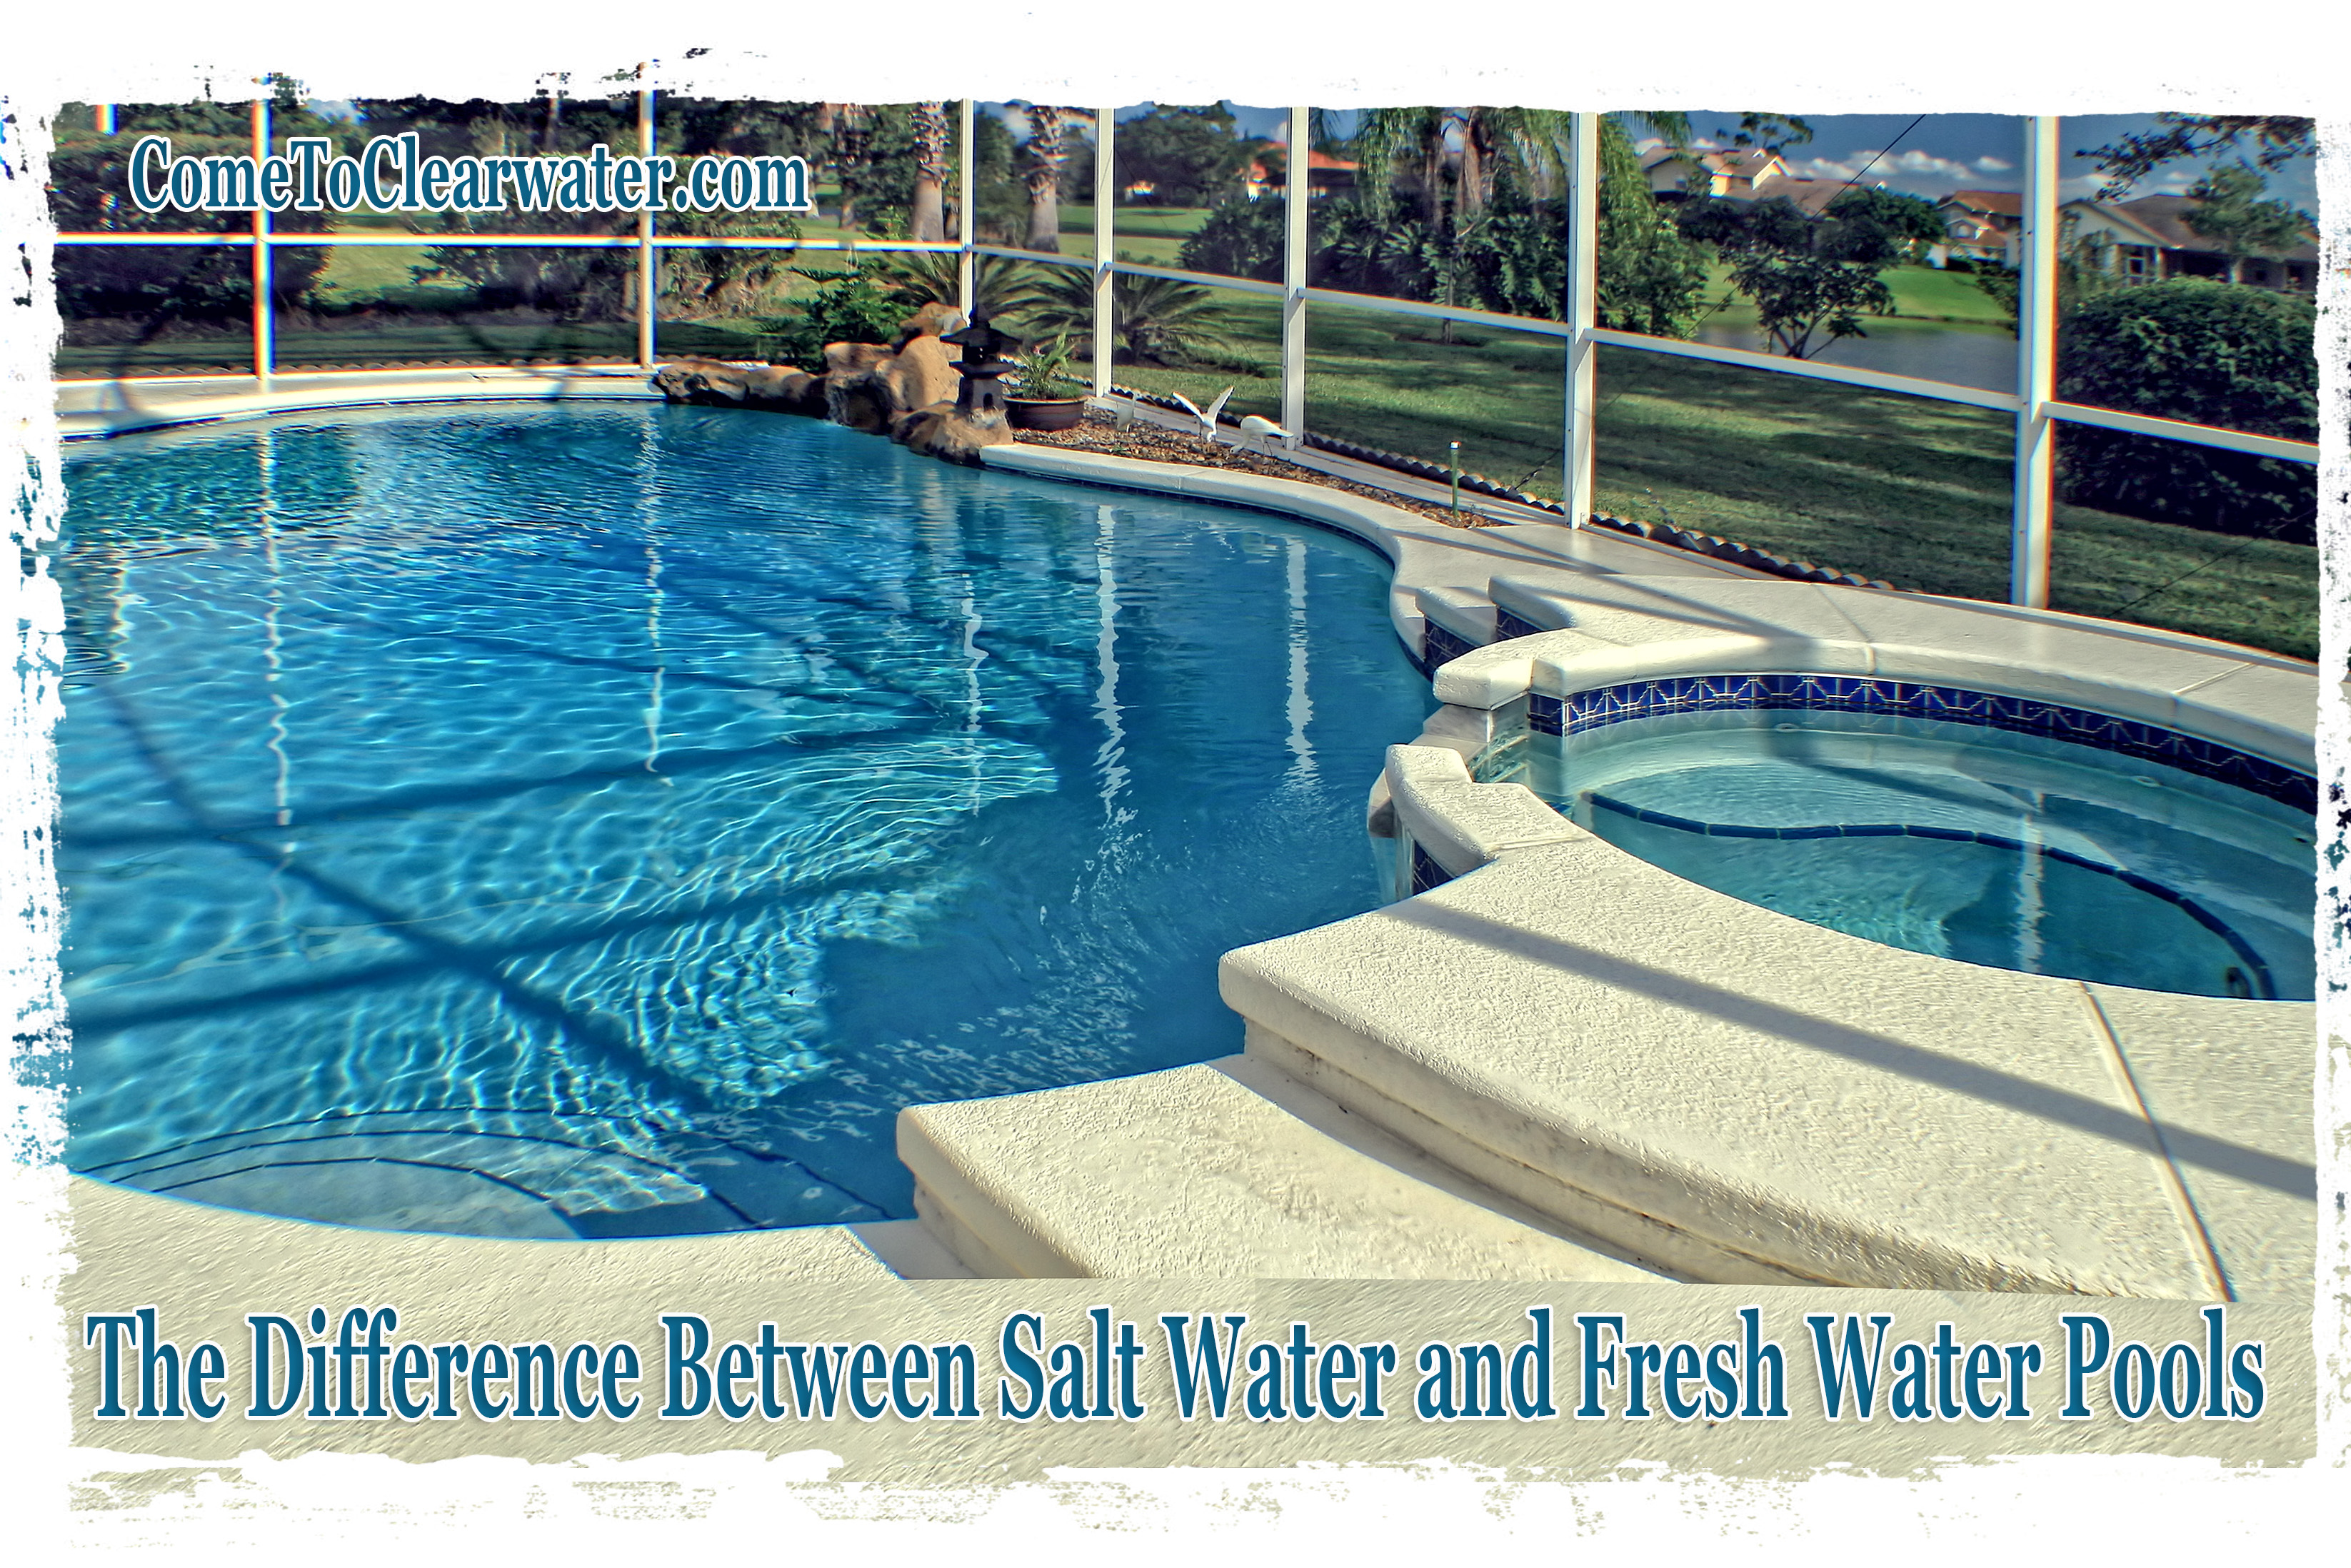 Difference Between Salt Water and Fresh Water Pools